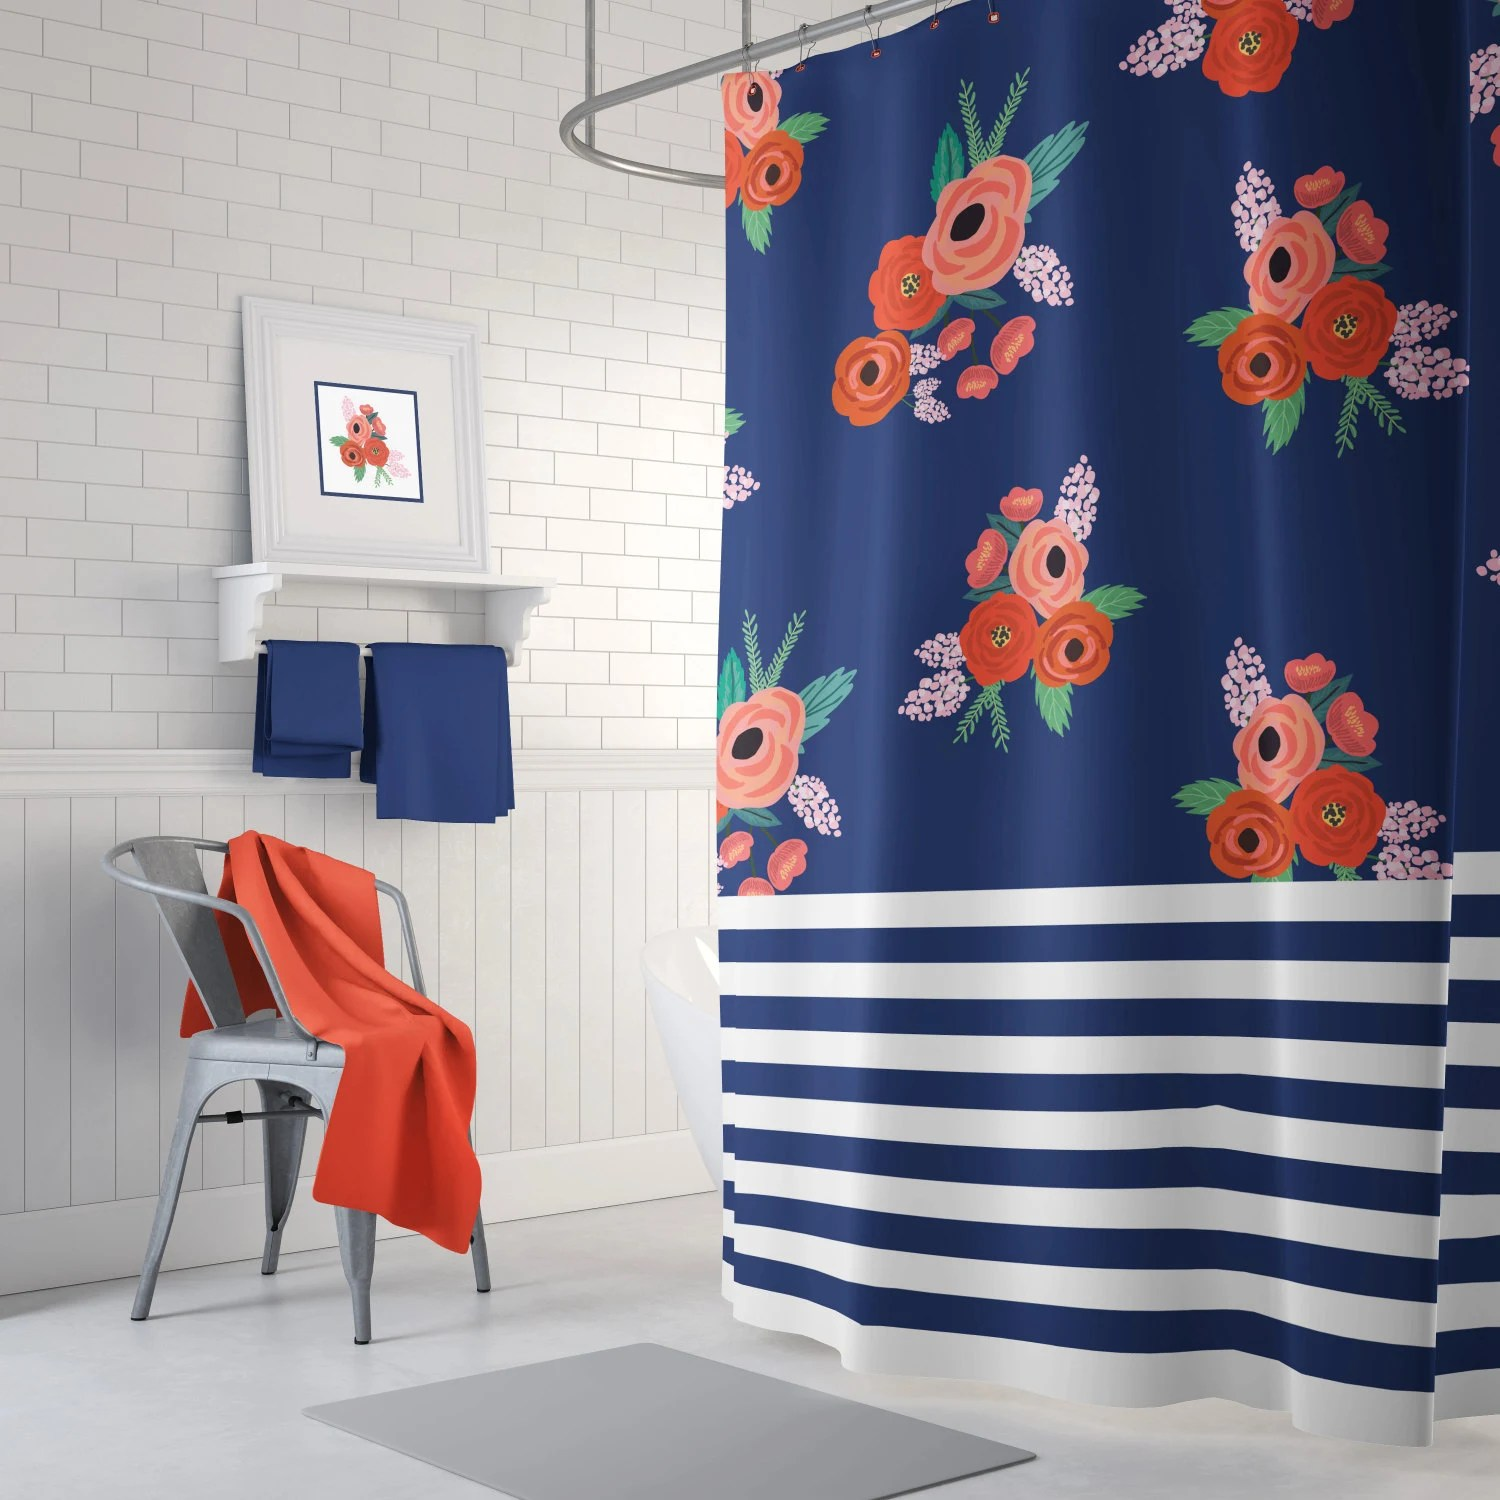 stripes and floral shower curtain navy blue coral red green white light pink flowers leaves home decor teen girl bathroom